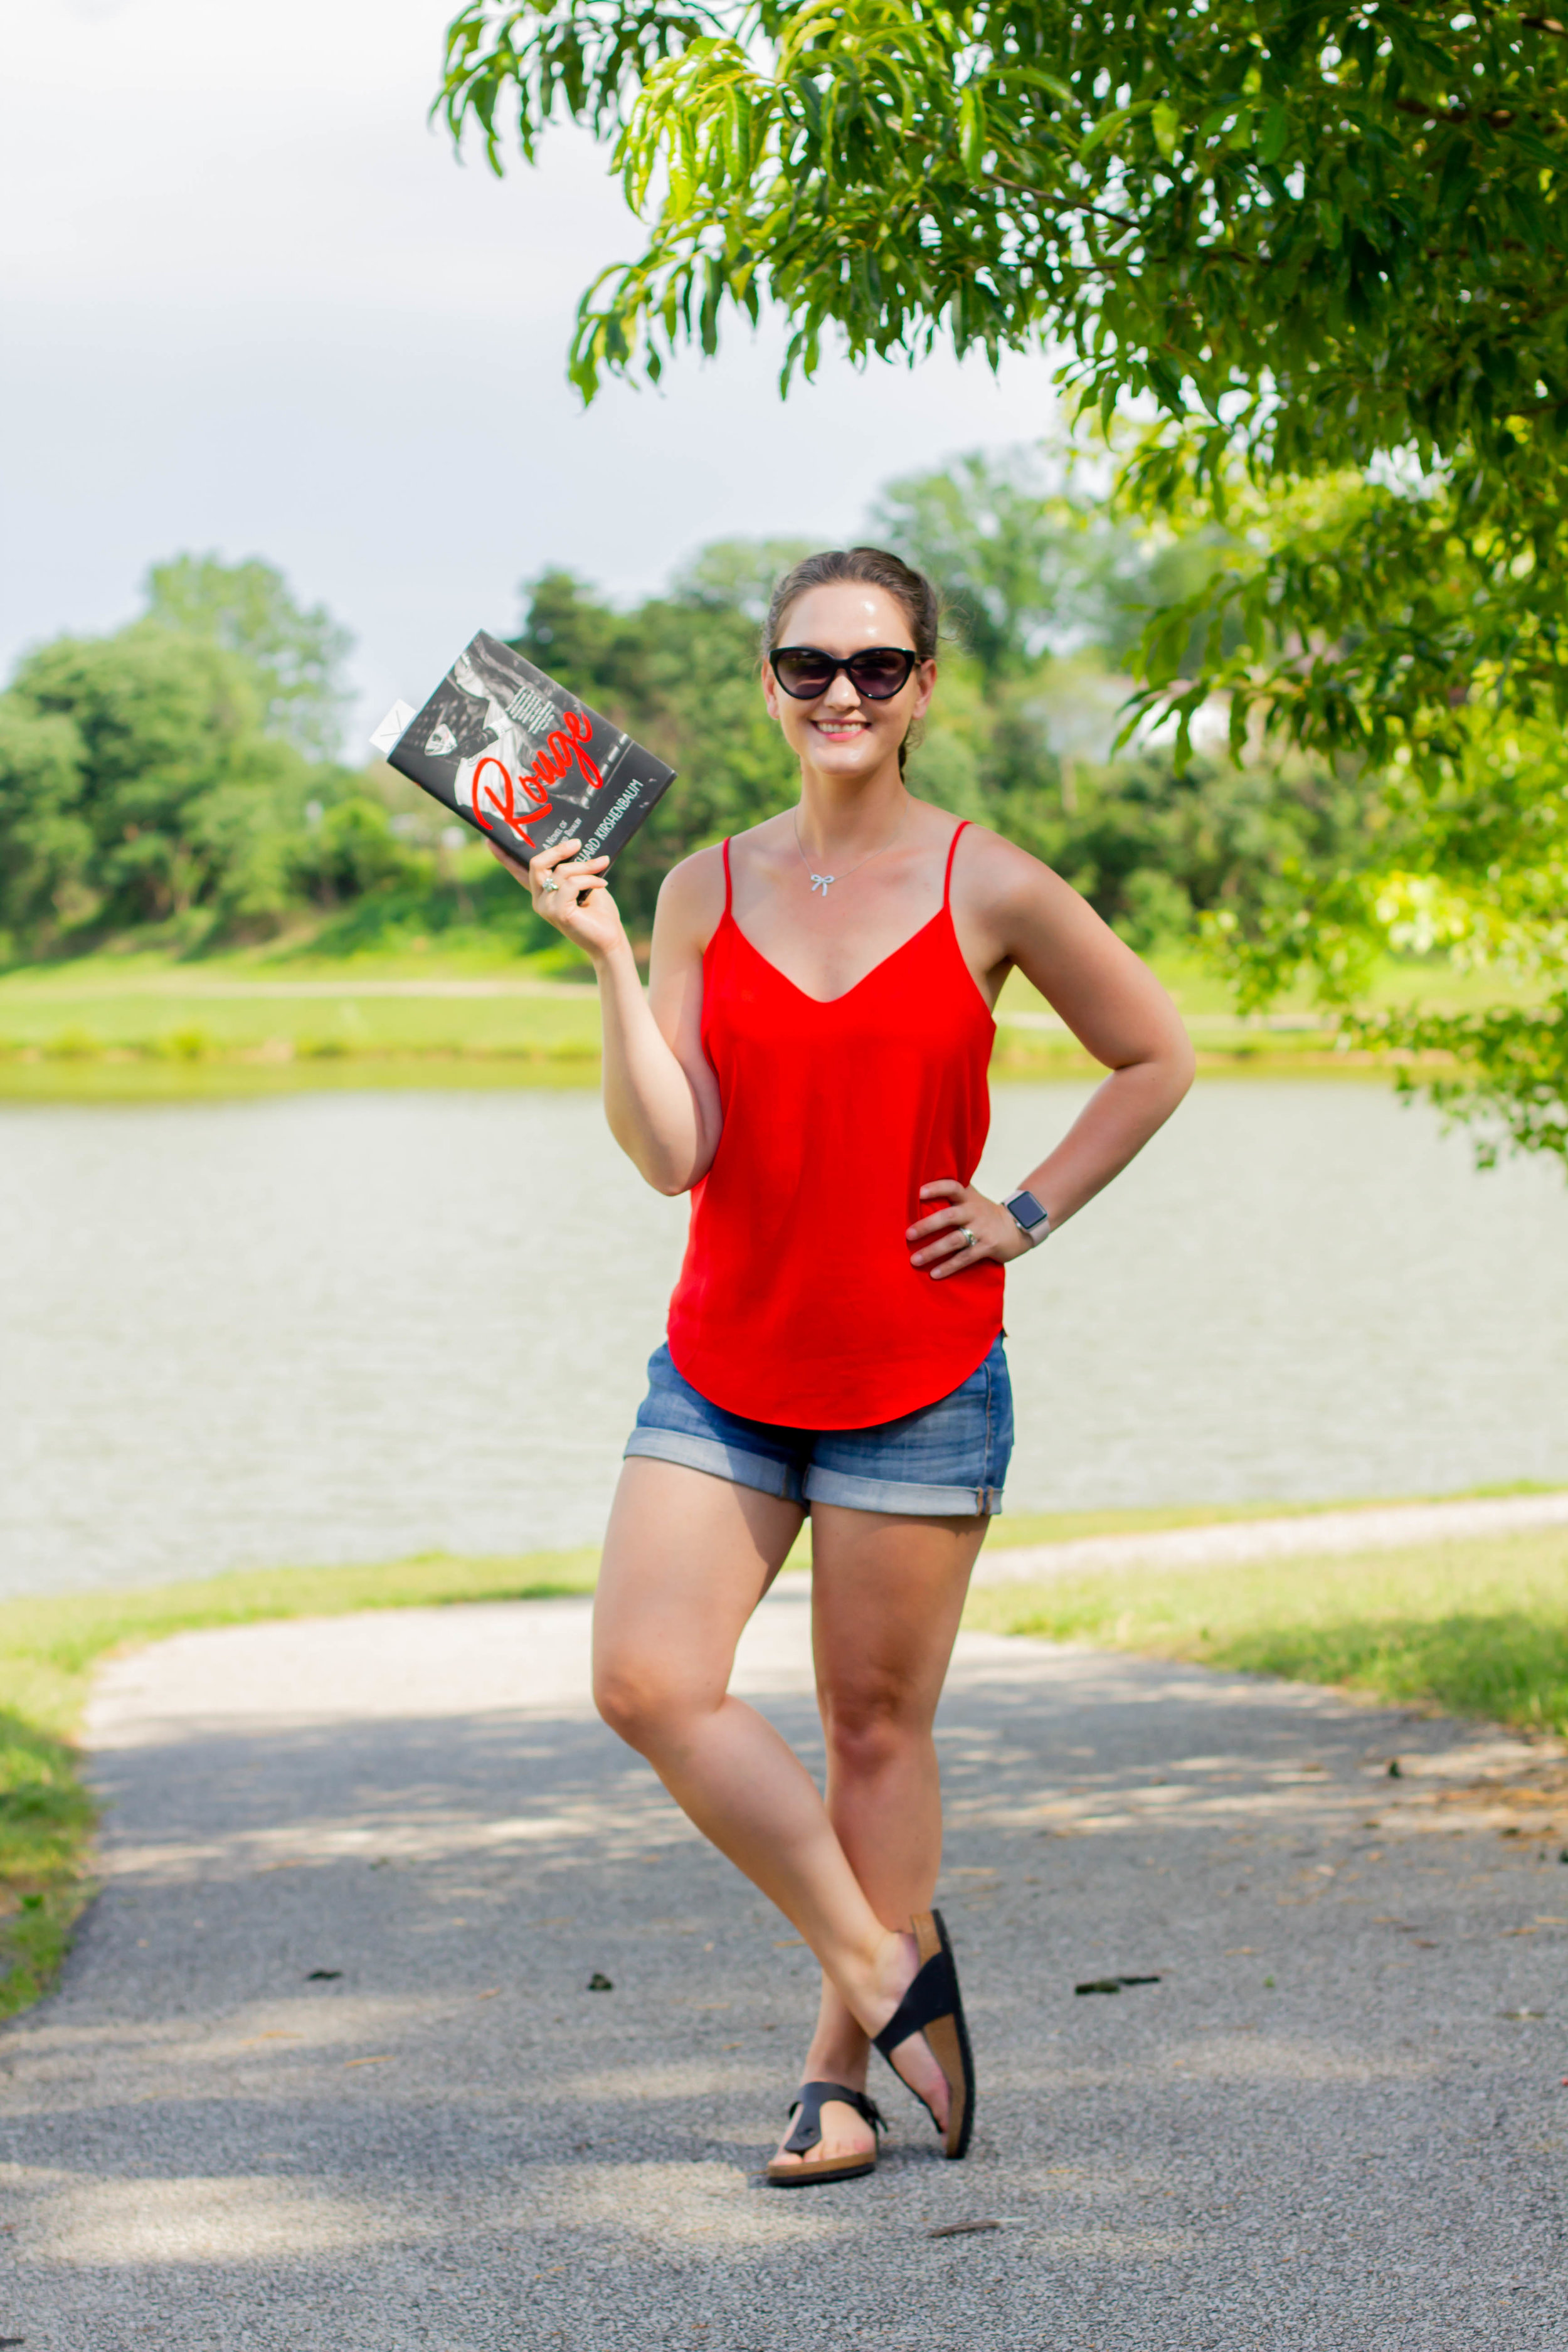 Reading Rouge by Richard Kirshenbaum at McKay Park in Jefferson City, MO